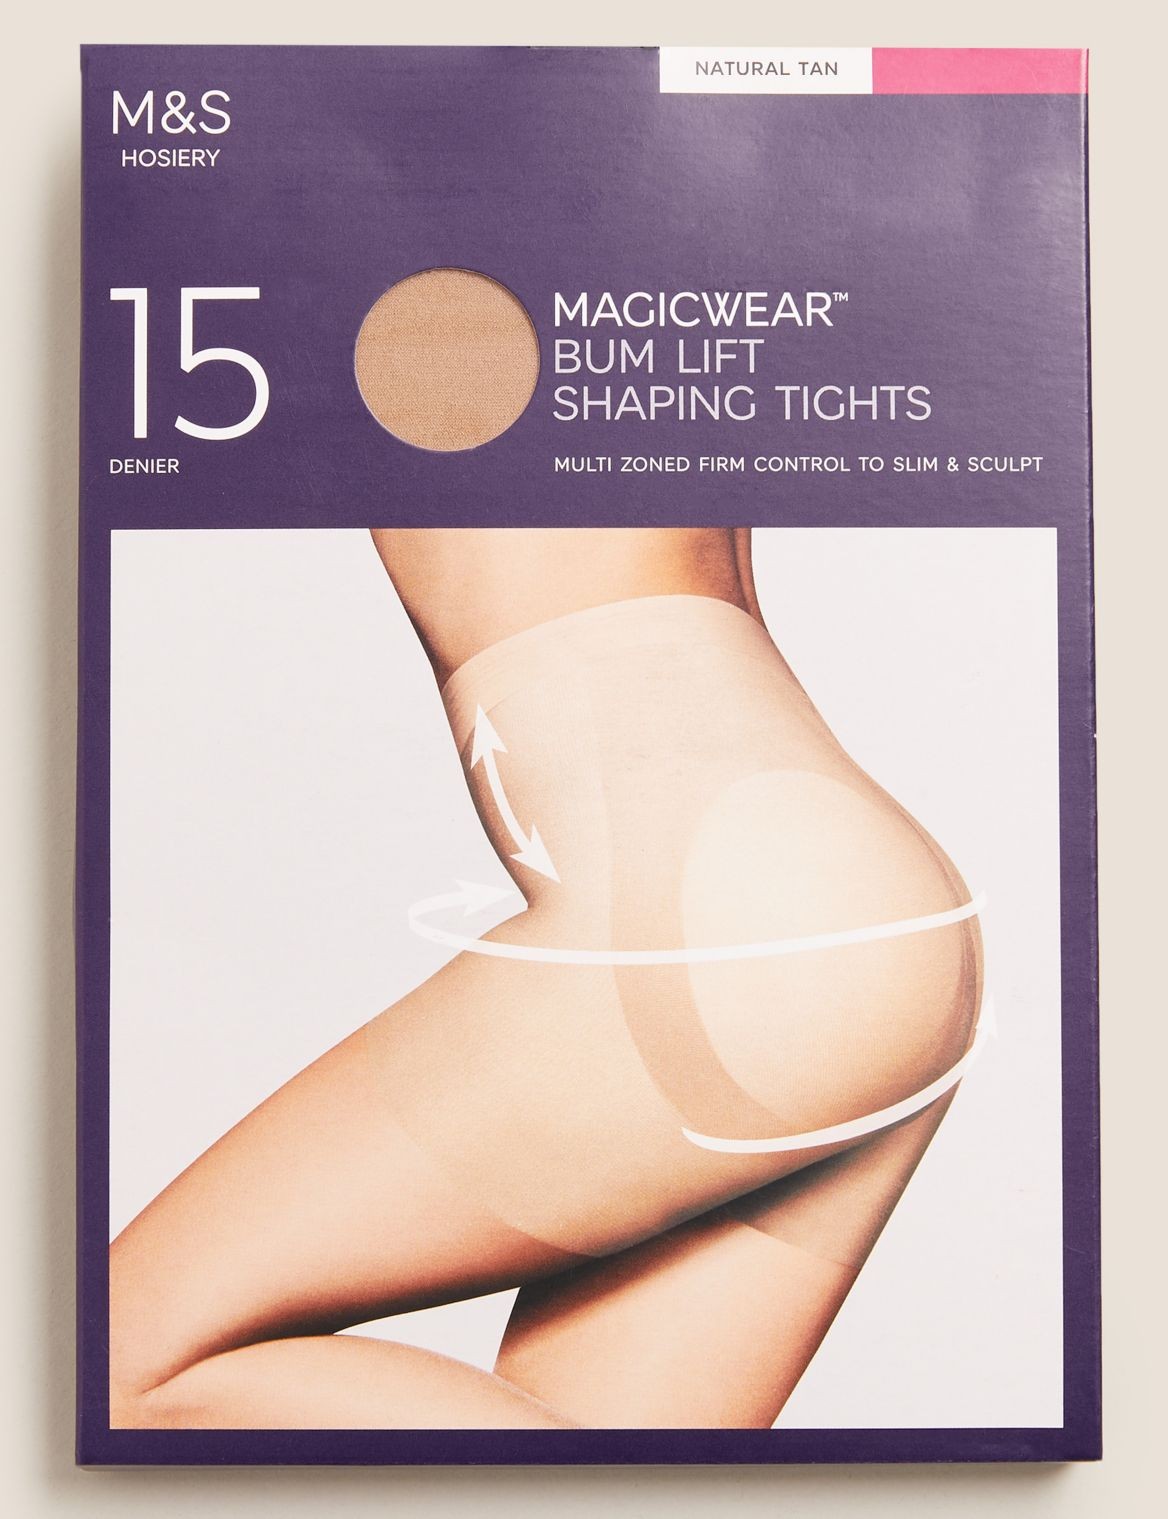 15 Denier Magicwear™ Matt Body Shaper Tights natural tan